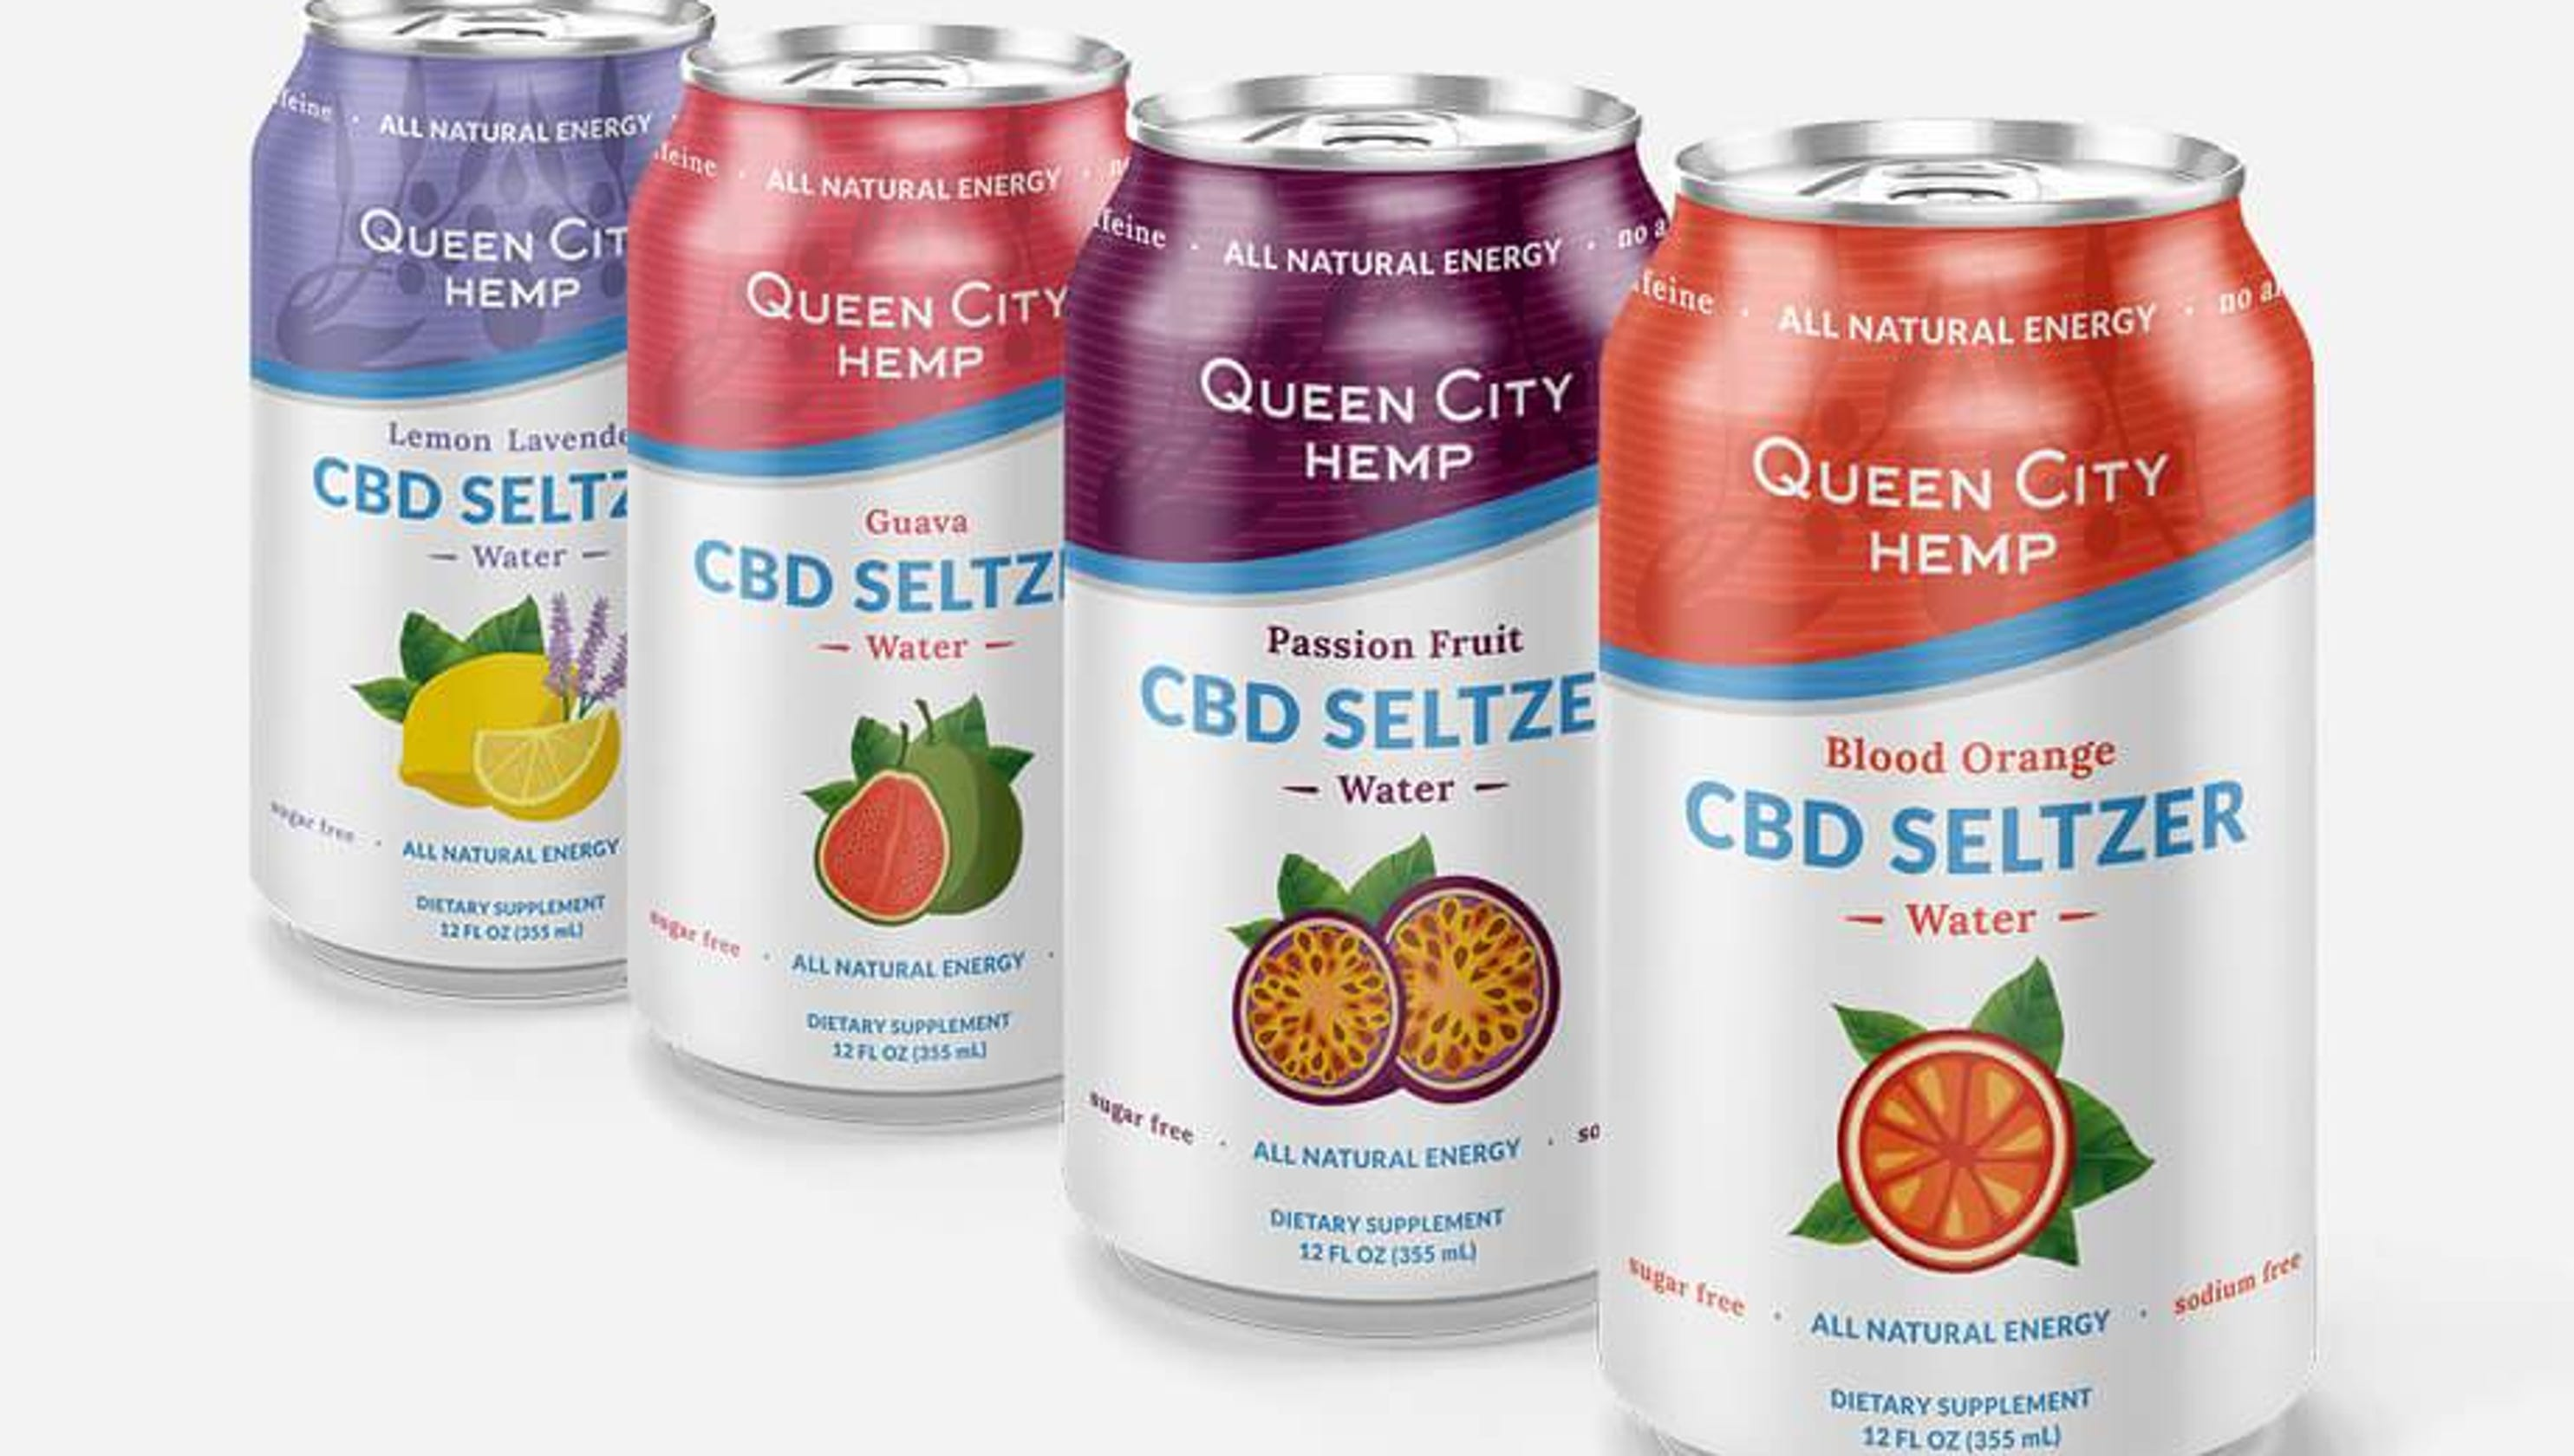 CBD: Ohio cracks down on sales, removes products from shelves